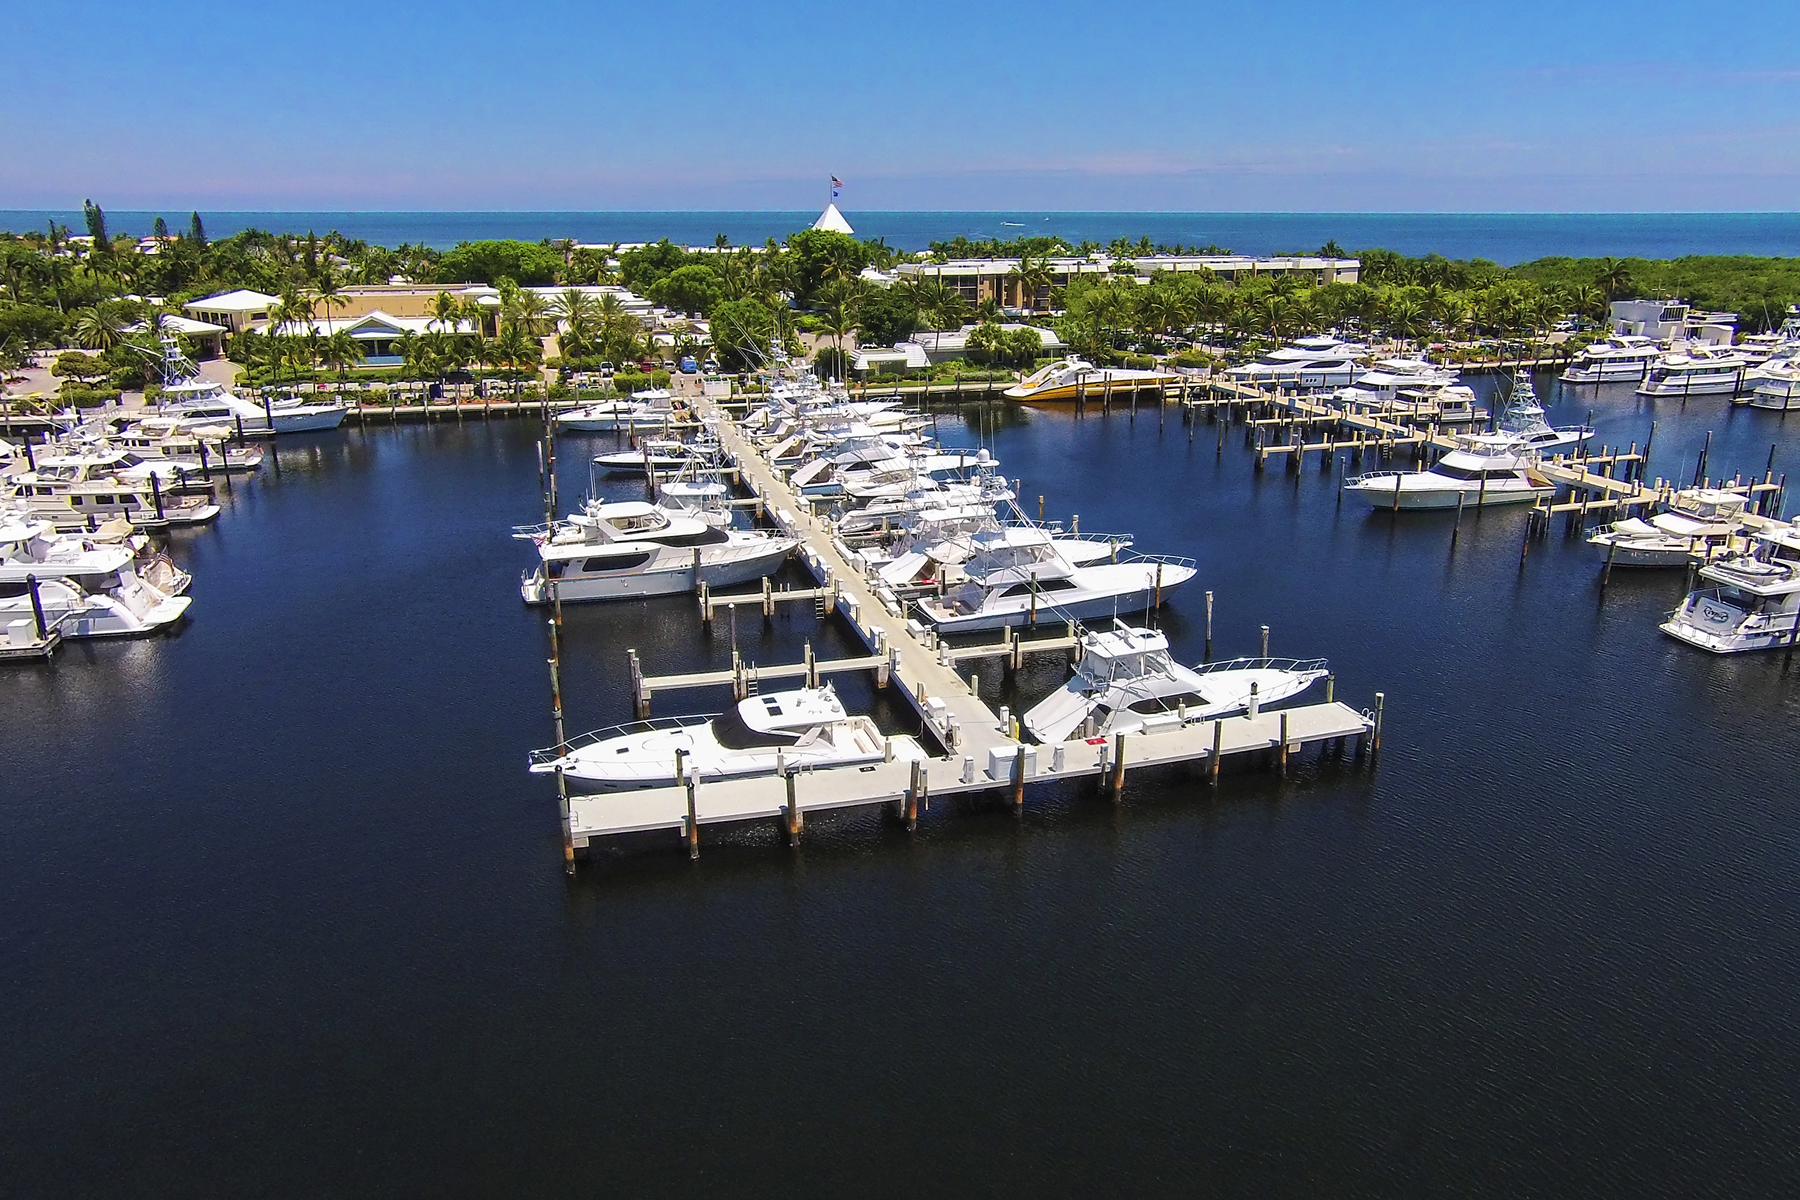 para Venda às Ocean Reef Marina Offers Full Yacht Services 201 Ocean Reef Dr. FS-25 Key Largo, Florida 3303 Estados Unidos